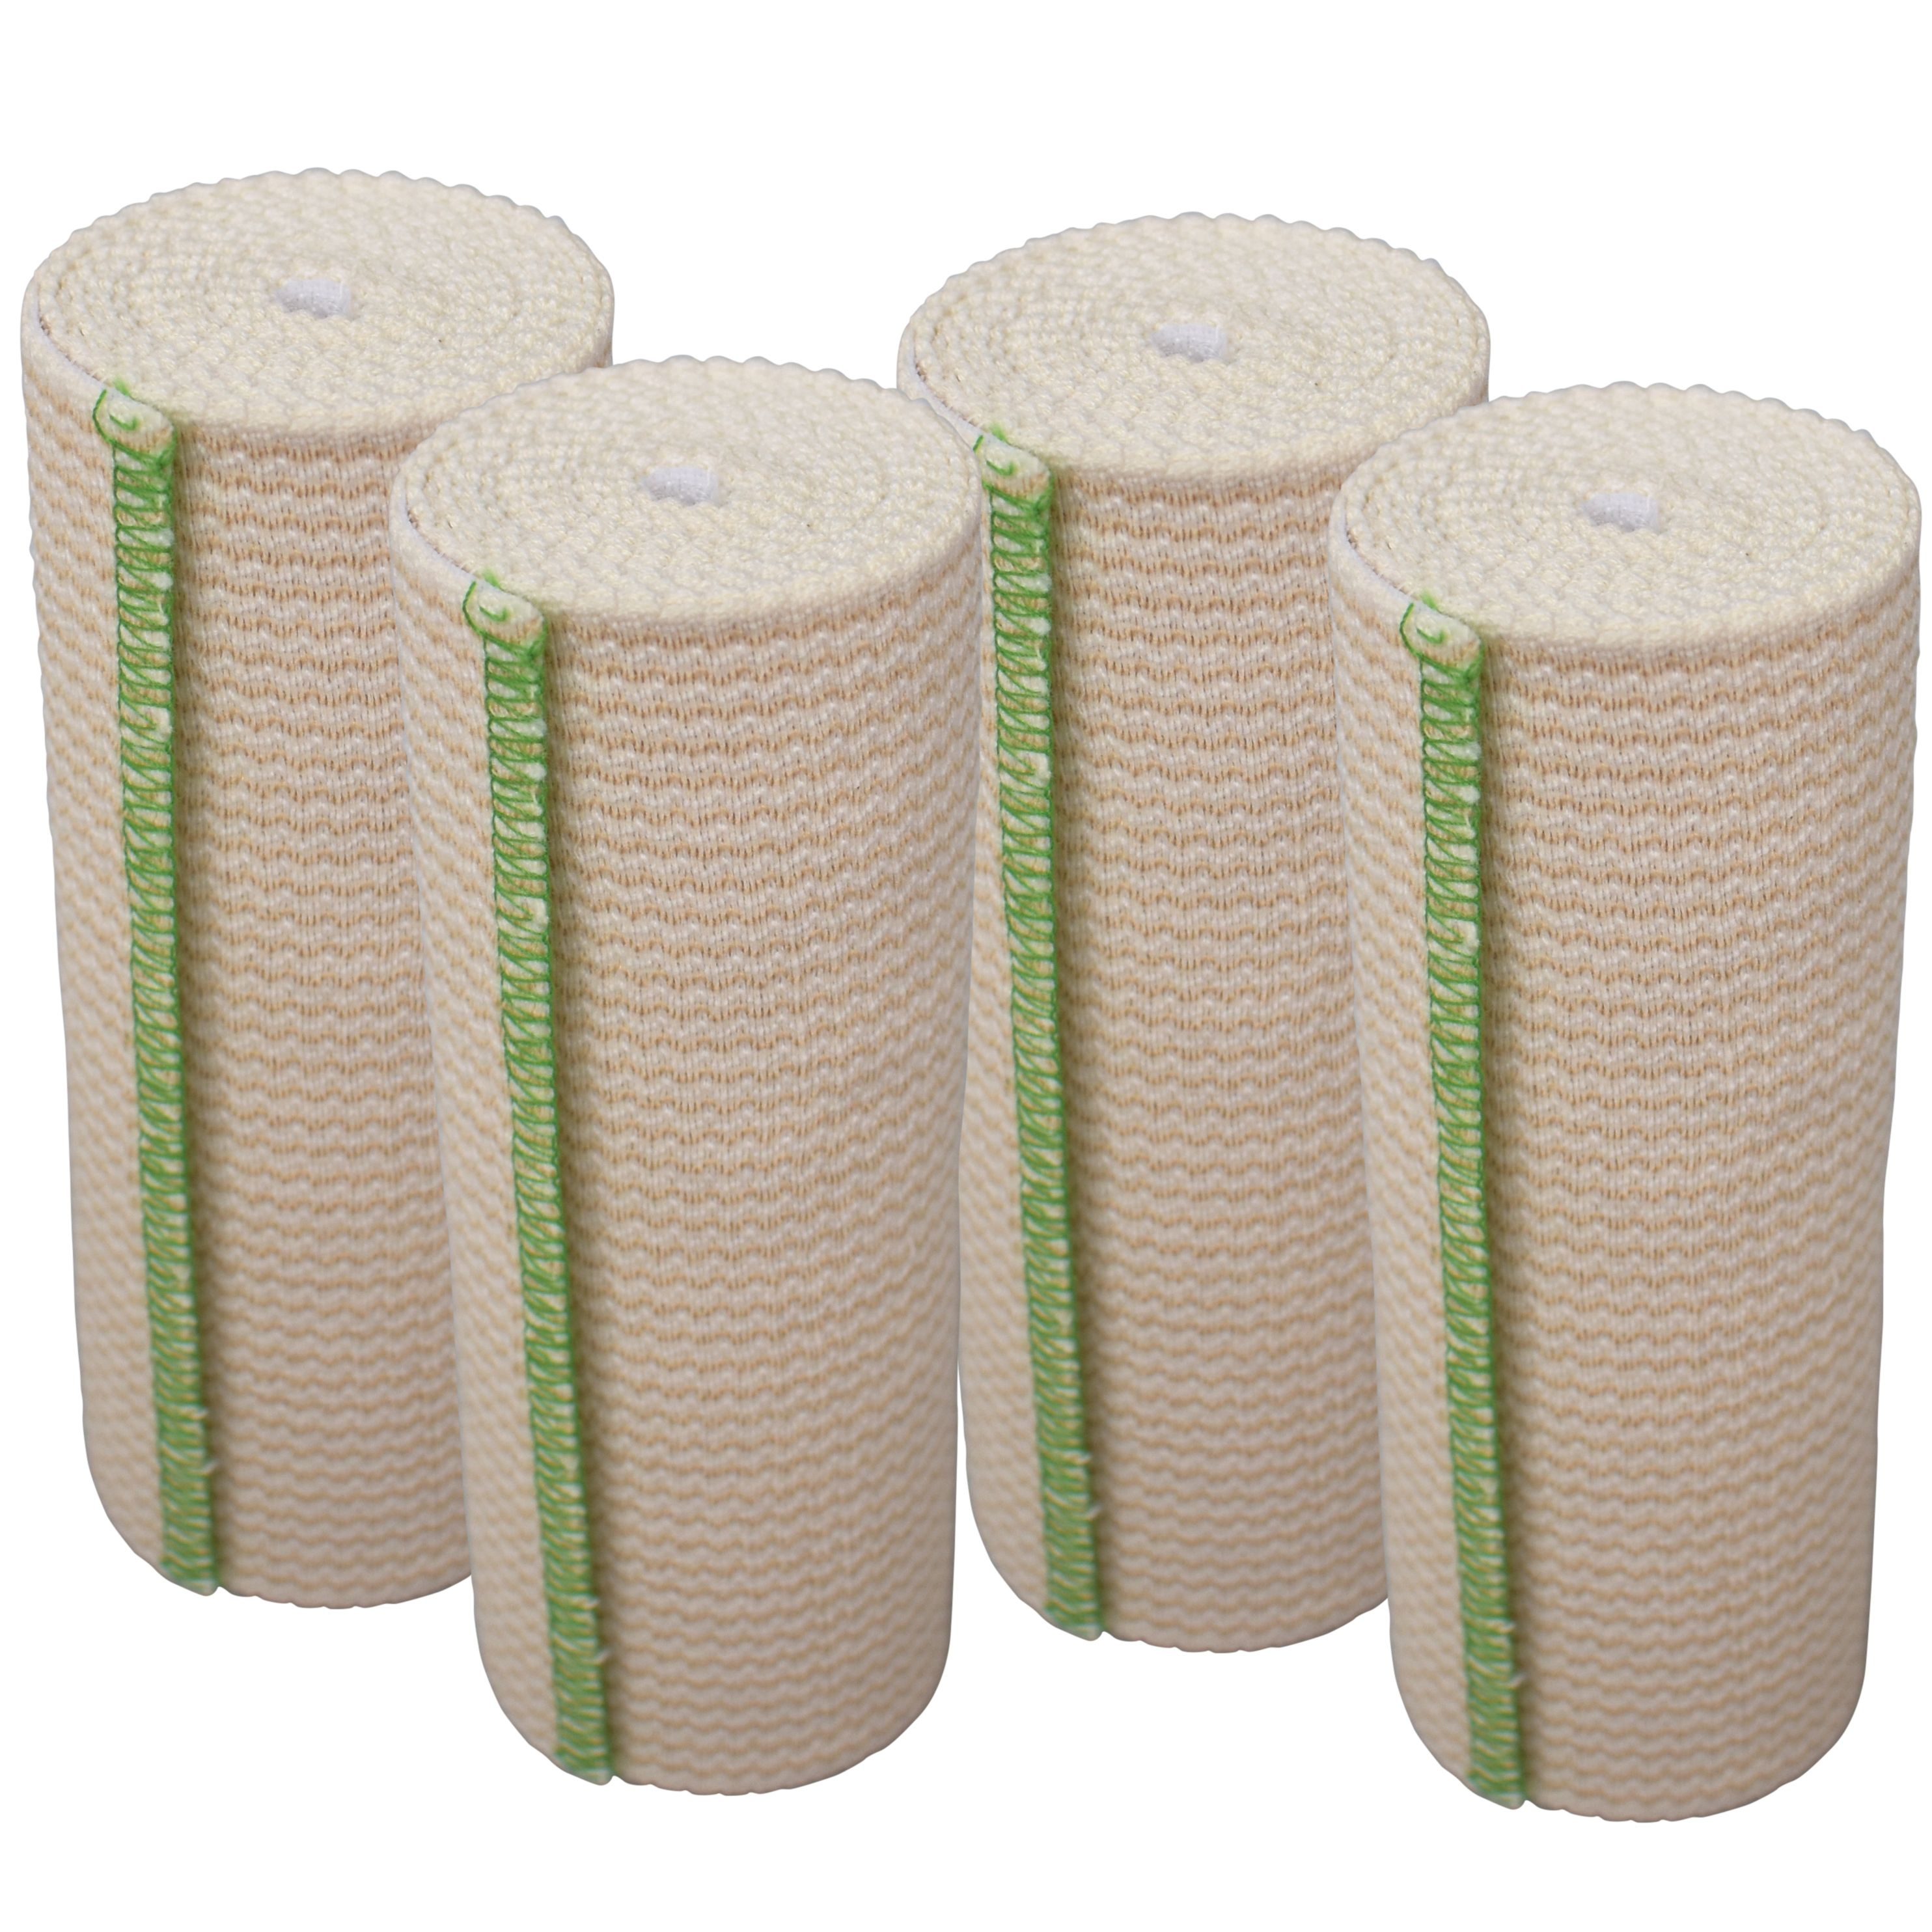 Gt 6 Cotton Elastic Bandage With Hook Loop Closure On Both Ends